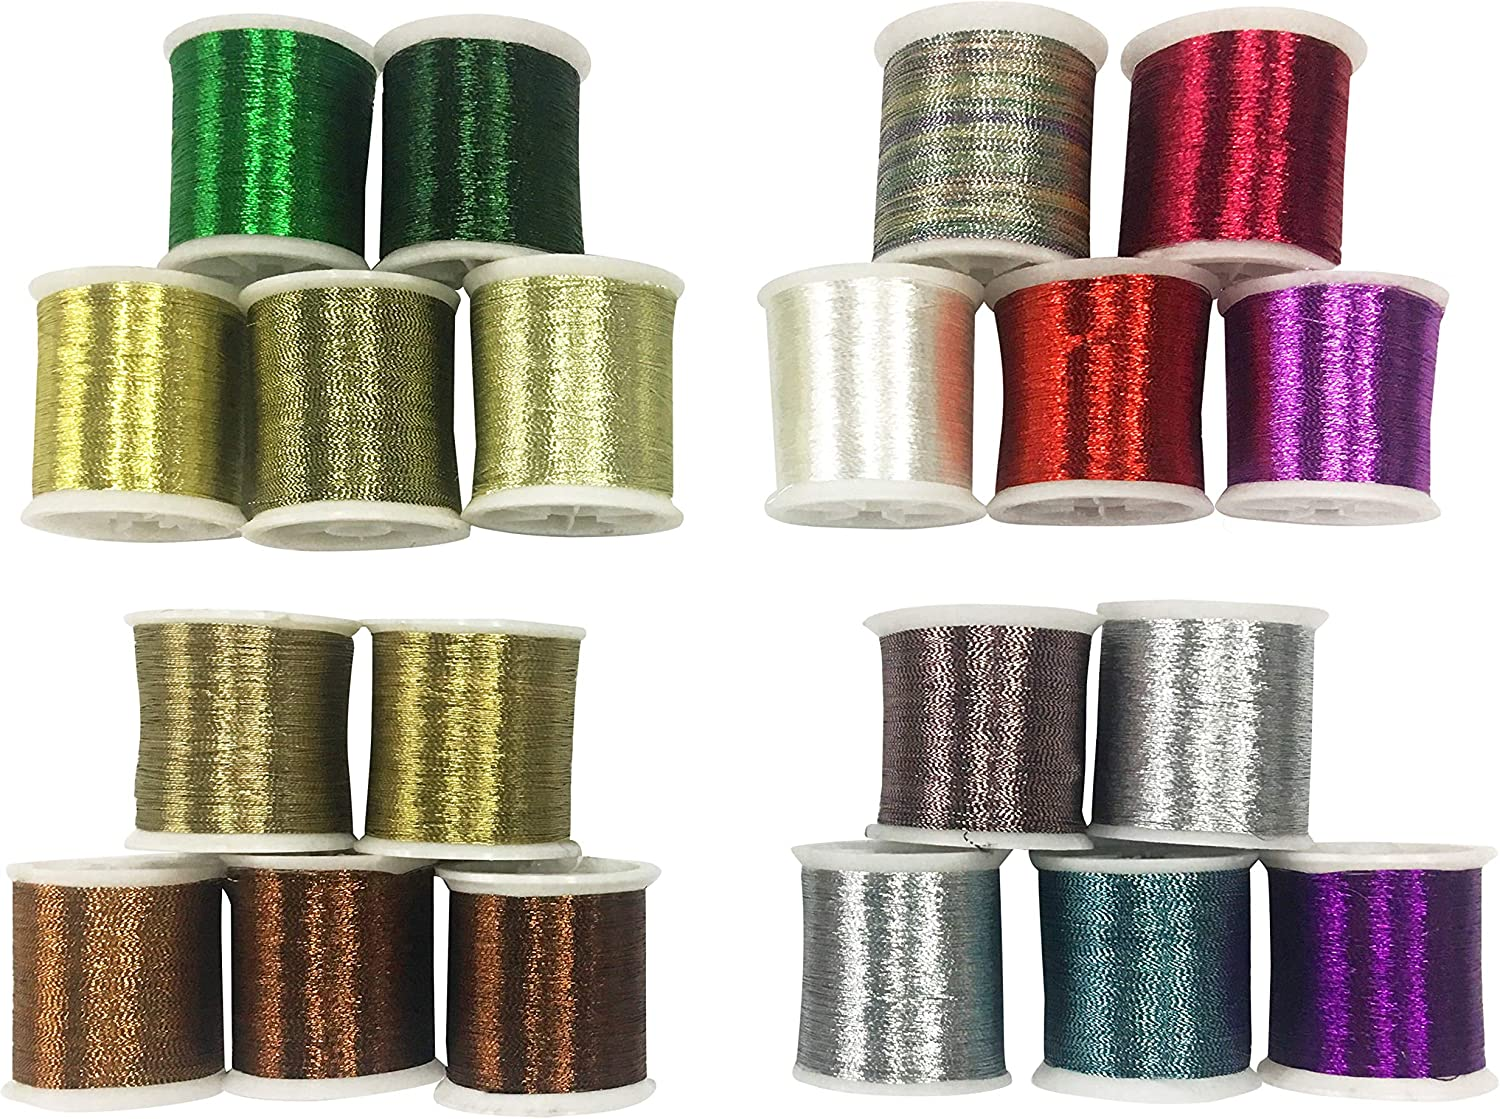 SELECTION PACK MIXED COLOURS METALLIC GLITTER CROCHET CRAFTS DECORATIVE THREAD